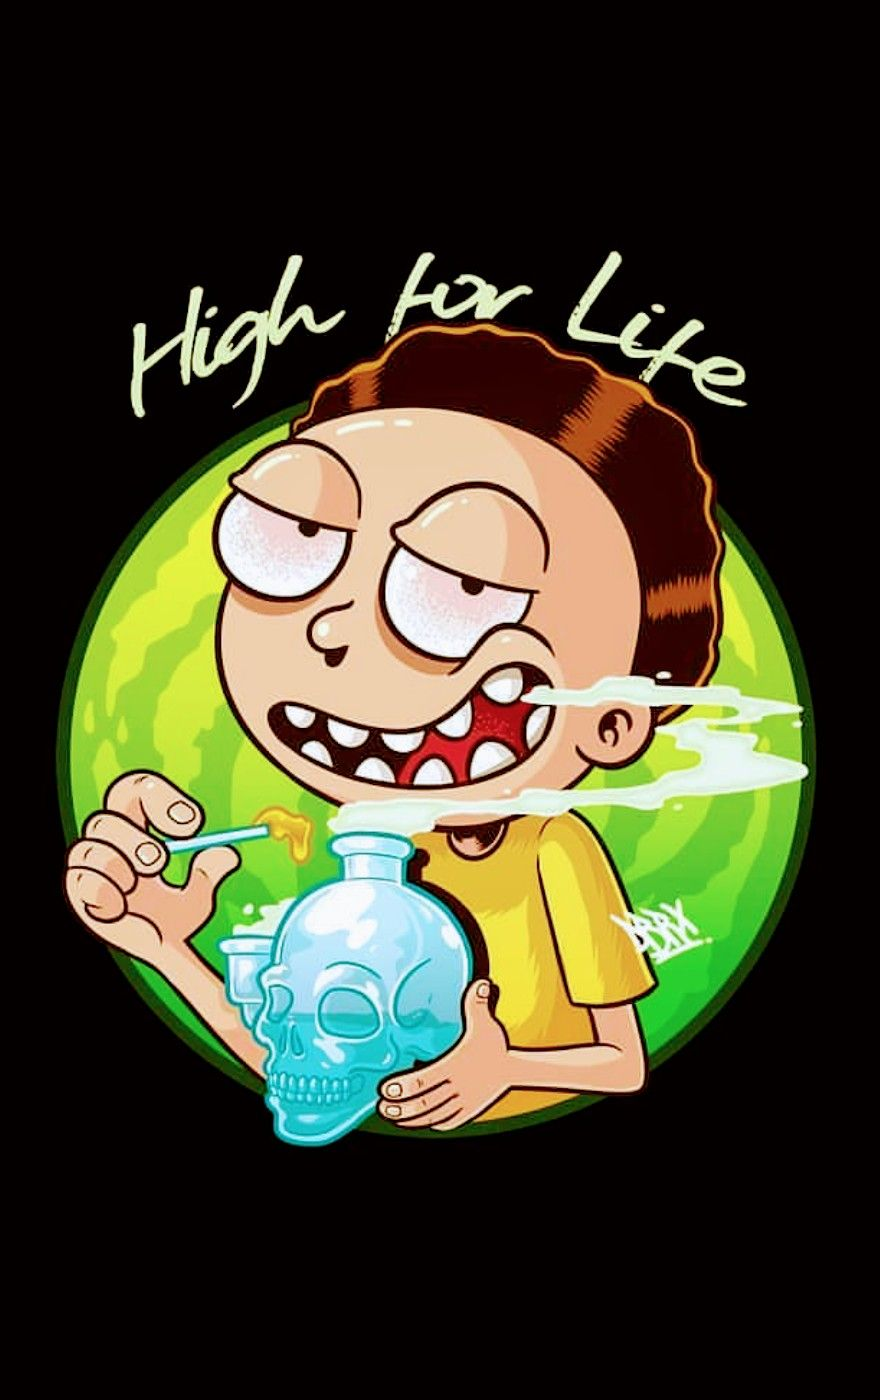 Rick And Morty Weed Wallpapers Top Free Rick And Morty Weed